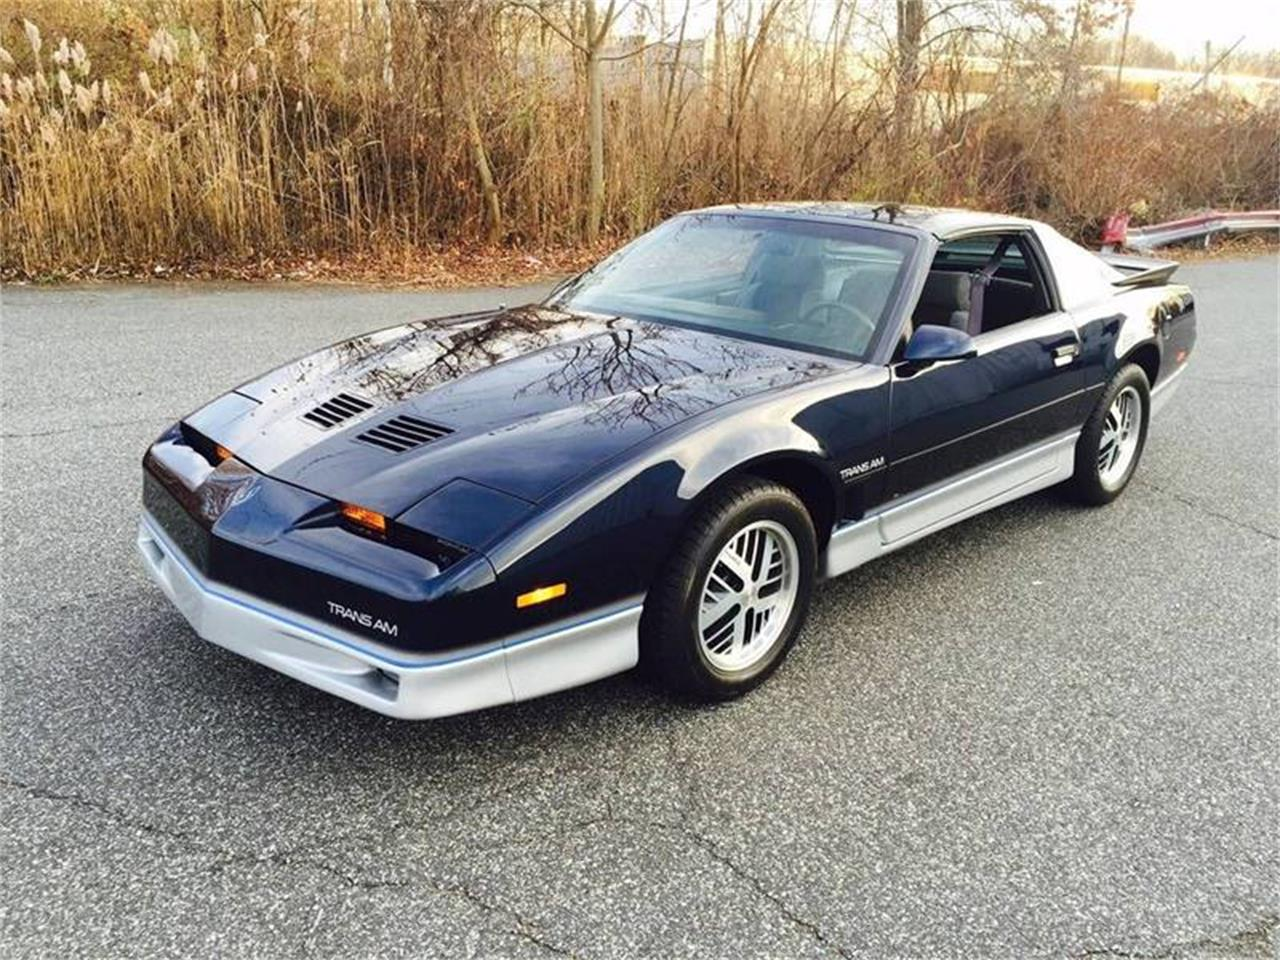 1986 Pontiac Firebird Trans Am For Sale In Long Island Ny Classiccarsbay Com